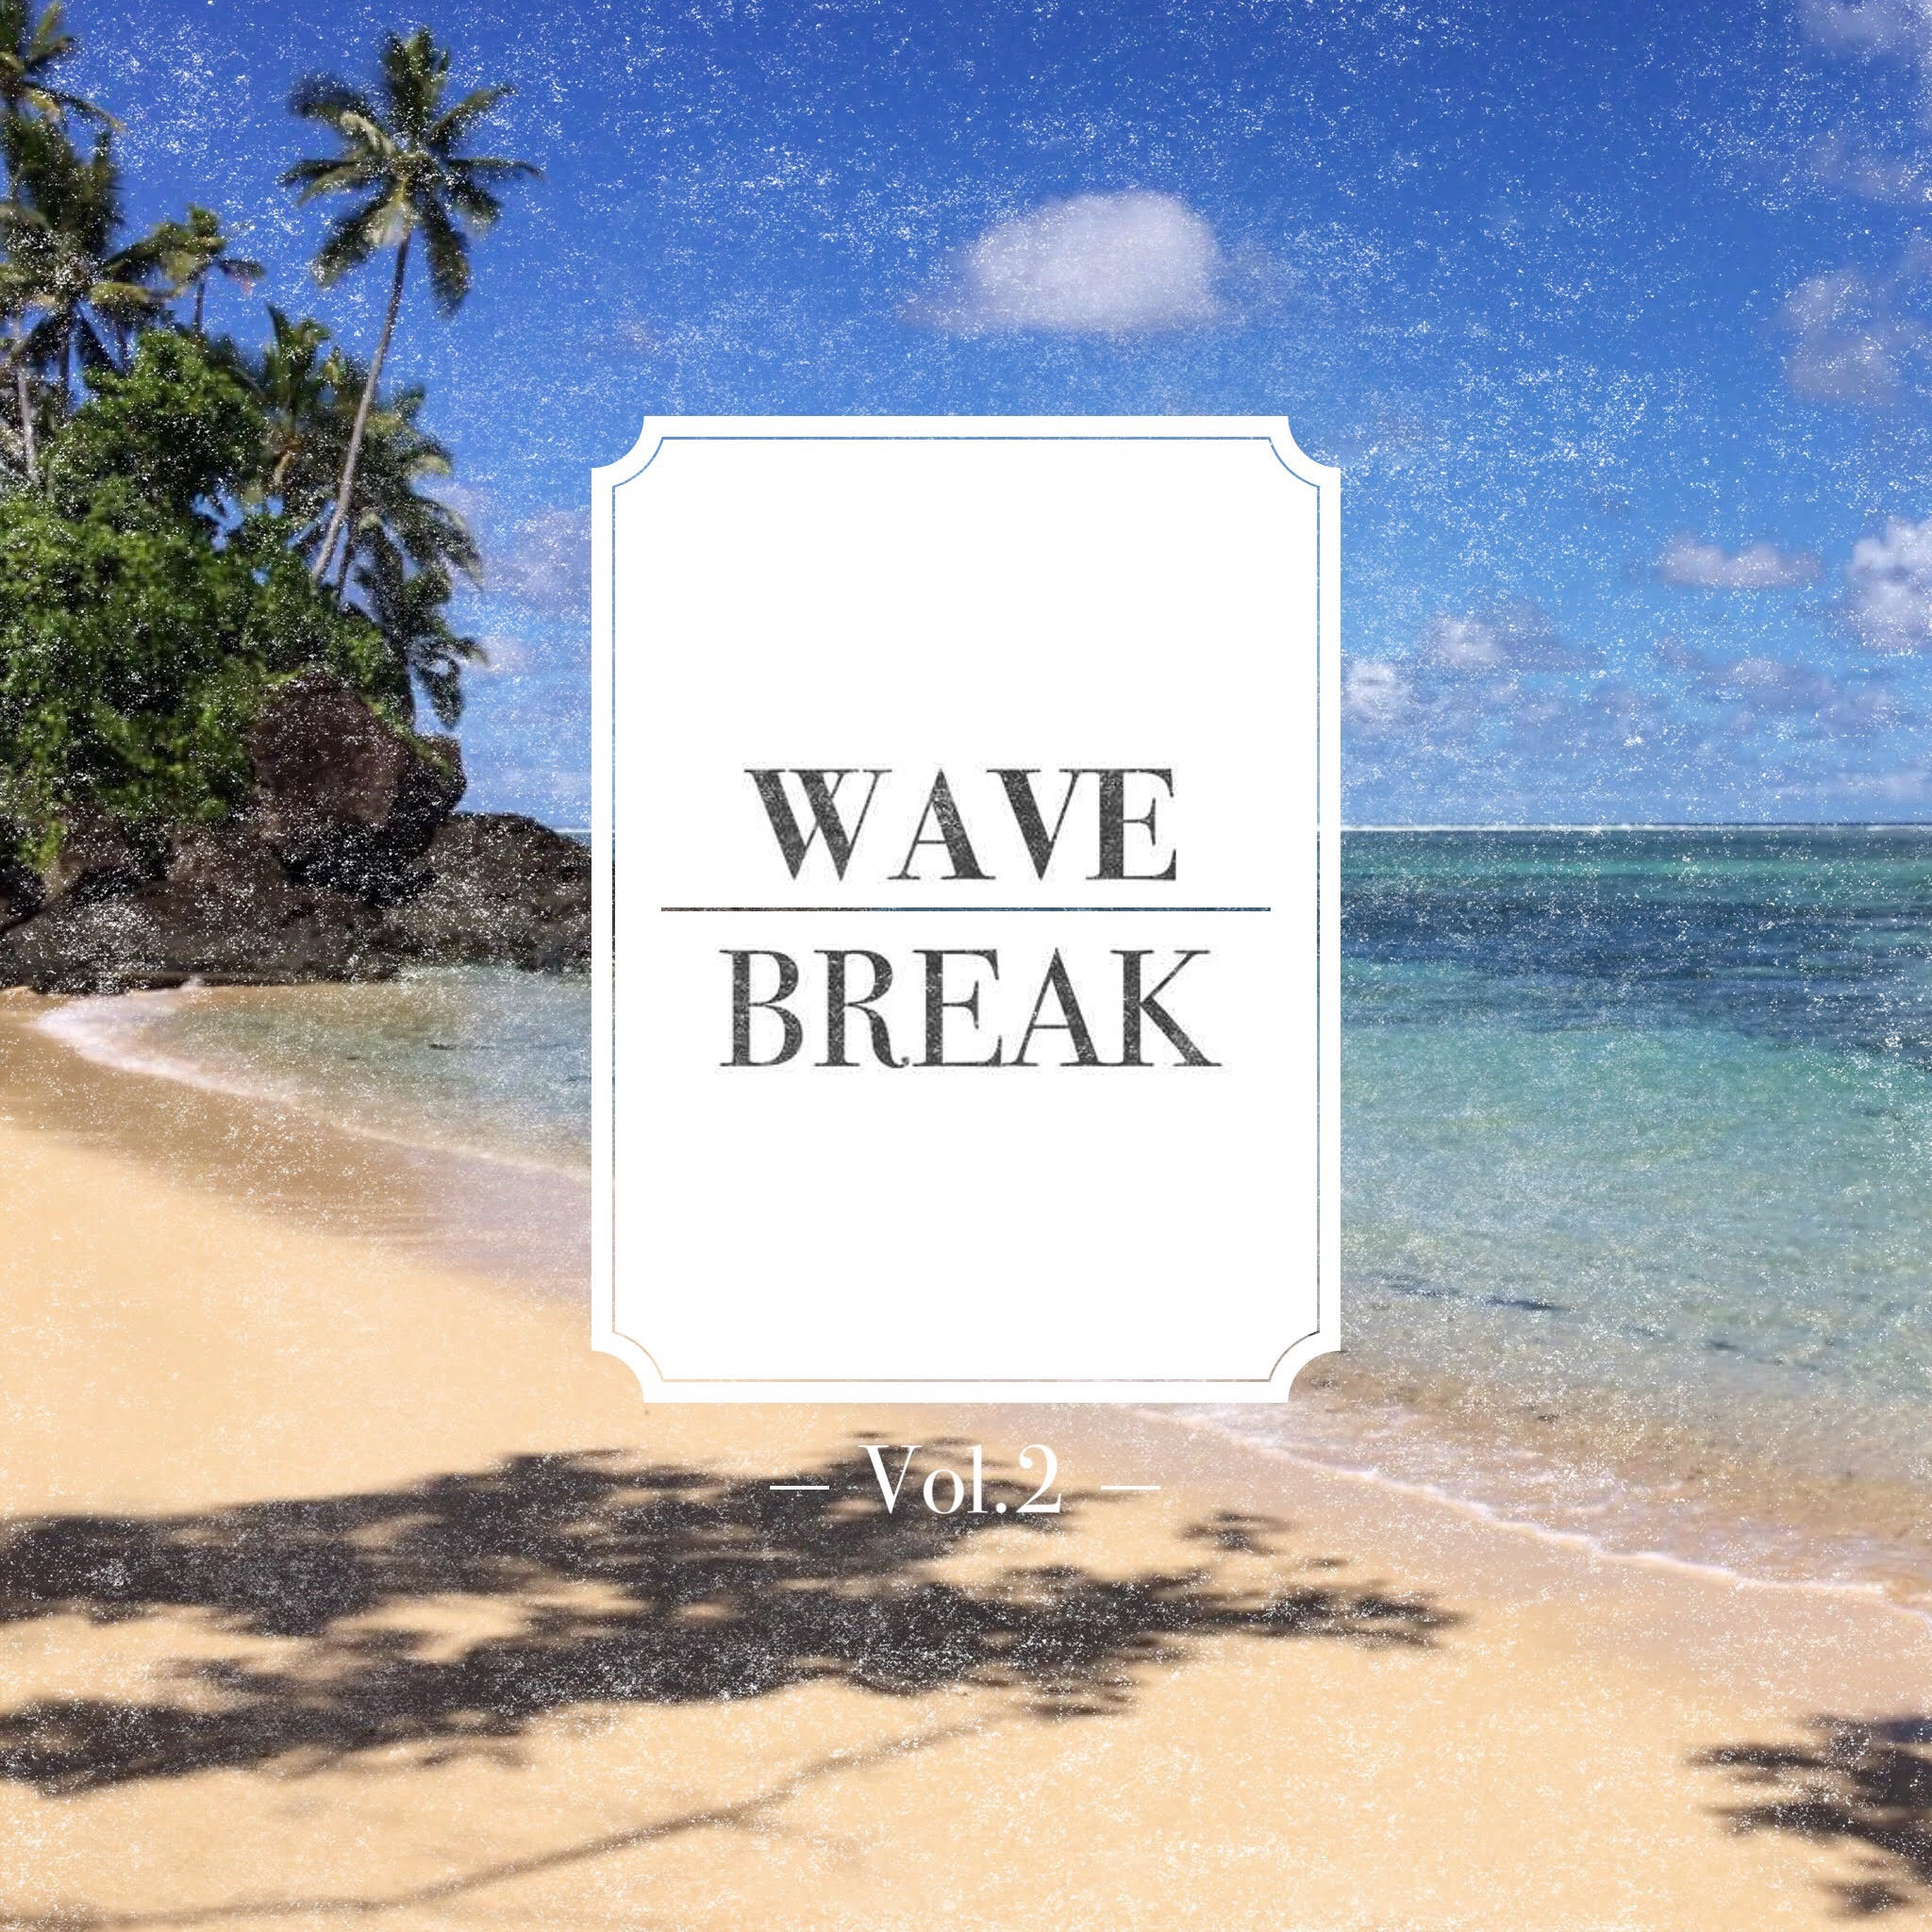 Wave Break Vol.2 by Alexander Gastrell (May 2017)